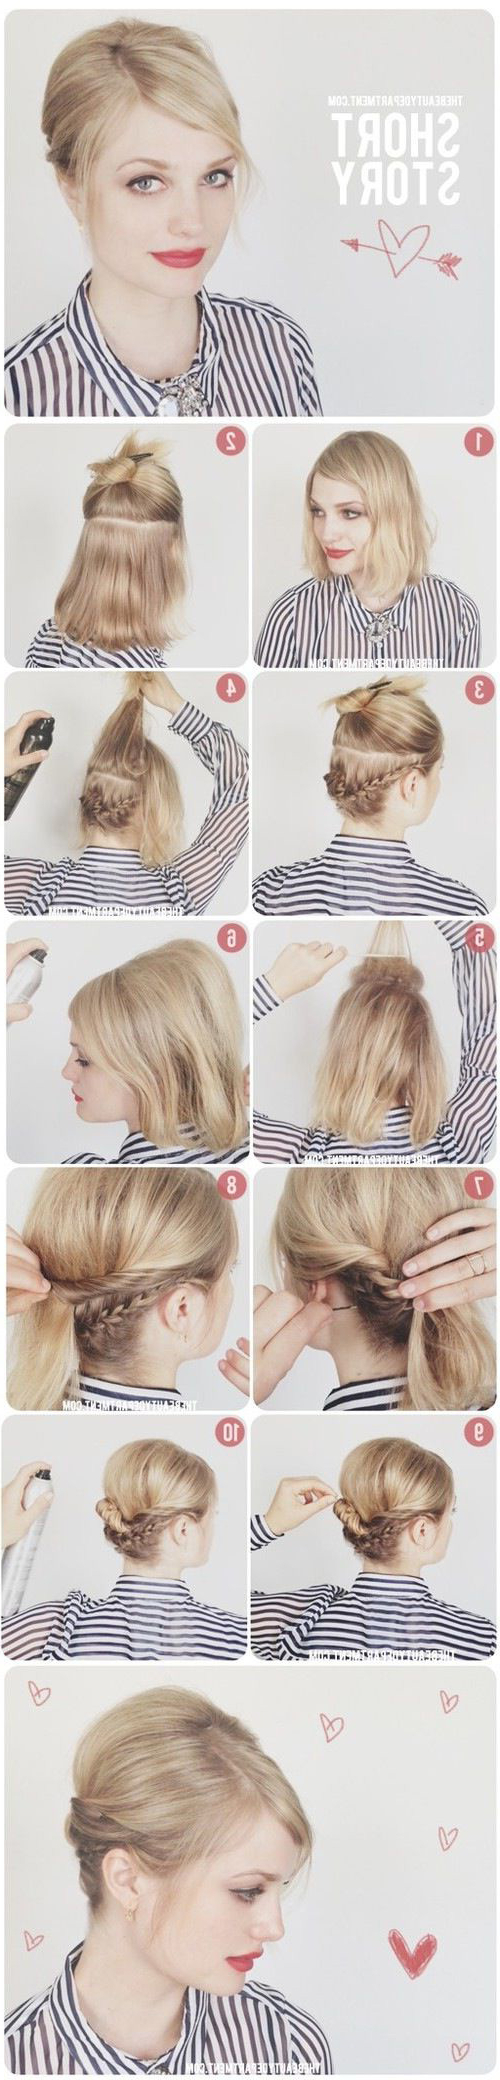 15 Easy No Heat Hairstyles For Dirty Hair – Gurl | Gurl Within Beach Hairstyles For Short Hair (View 14 of 25)